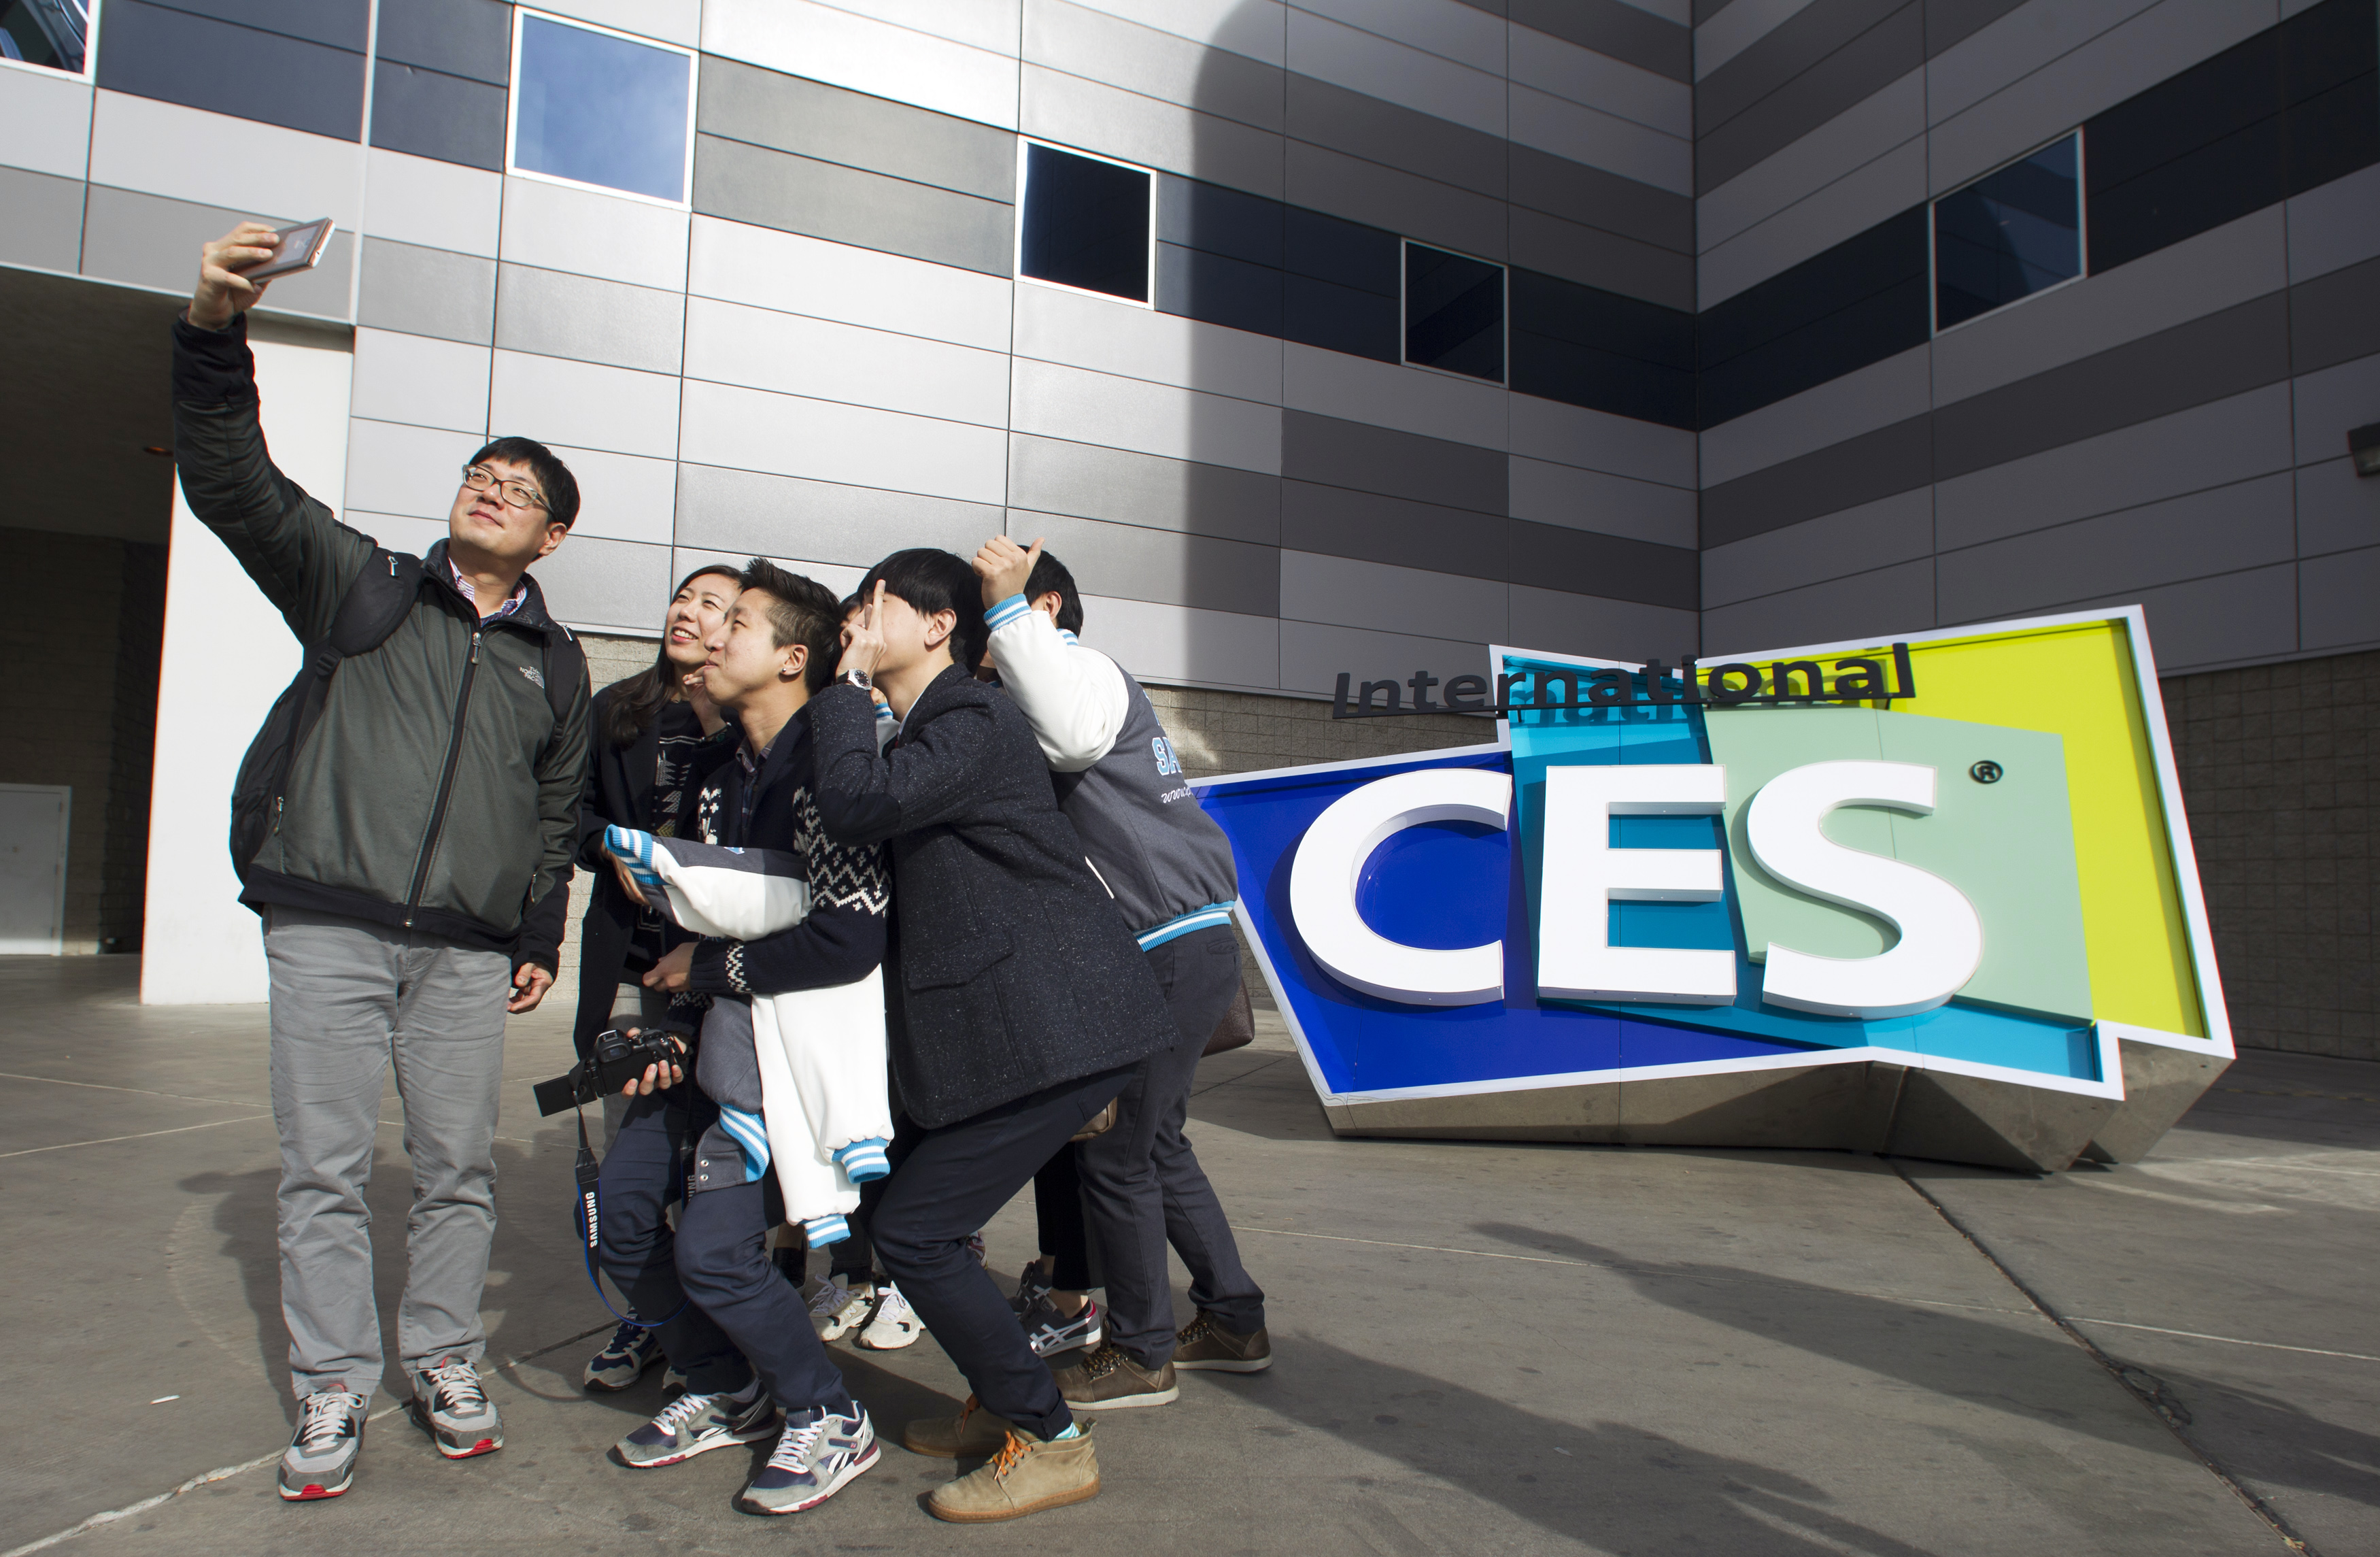 South Korean university students take a selfie in front of an International CES sign at the Las Vegas Convention Center in Las Vegas